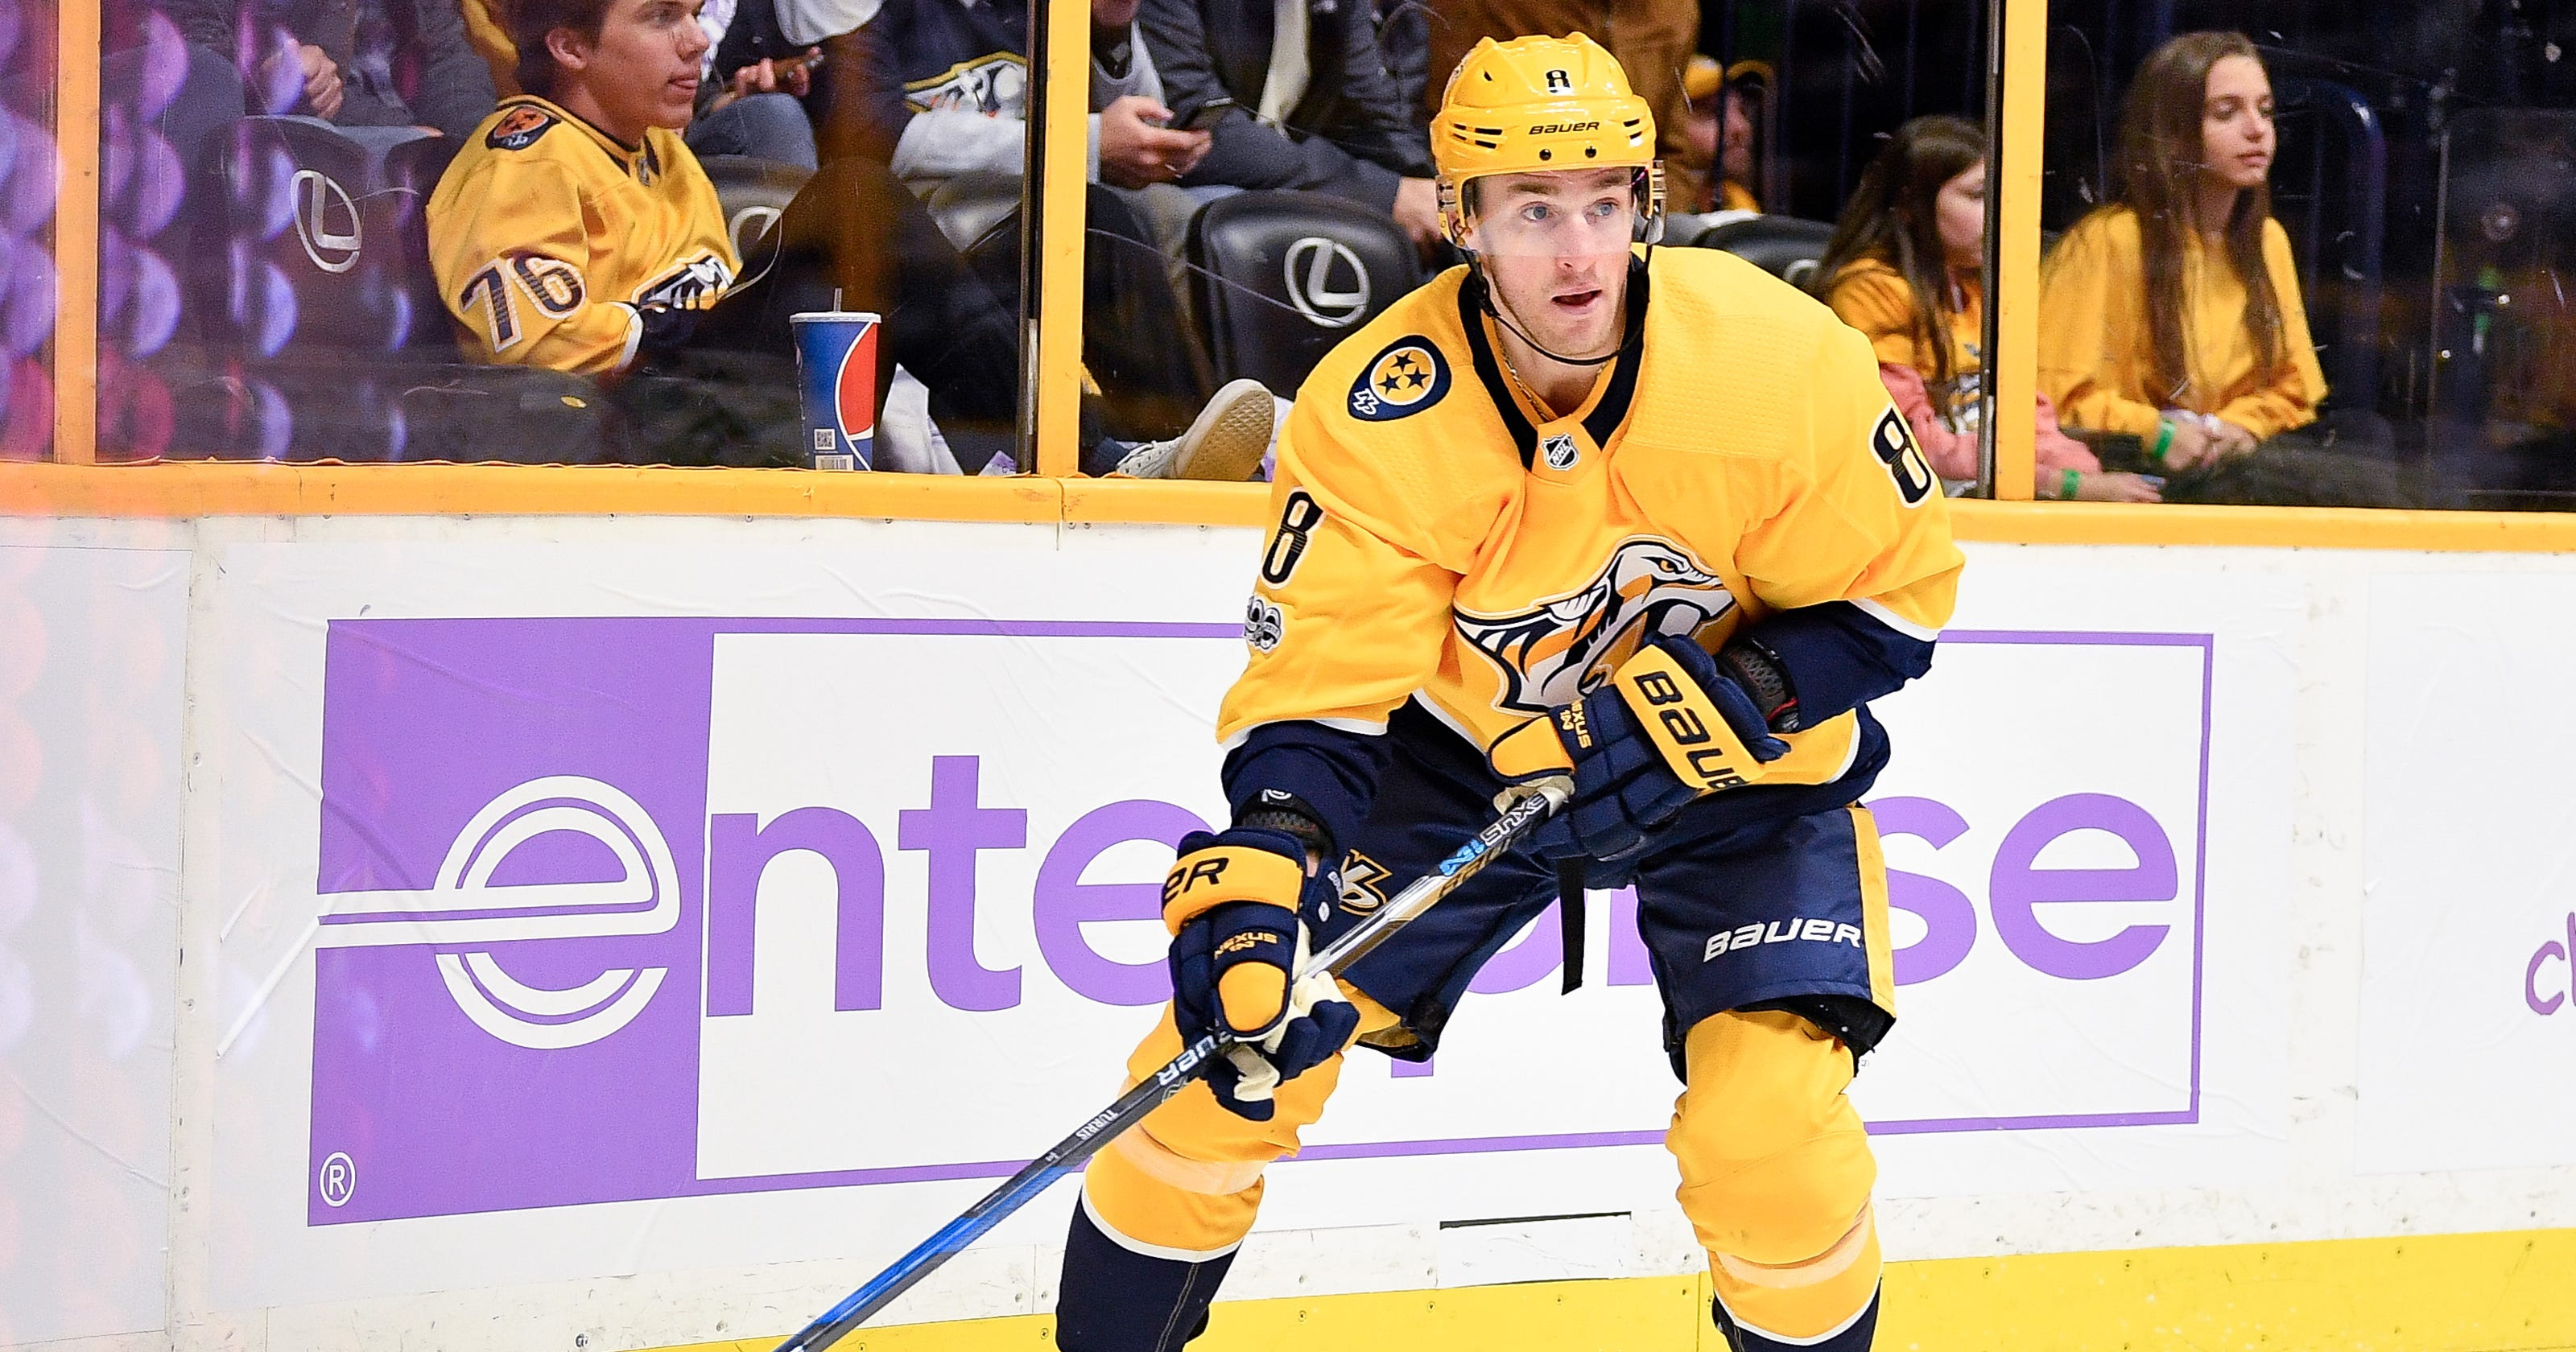 Predators  Kyle Turris settling in after  whirlwind  trade experience 8640889556f1